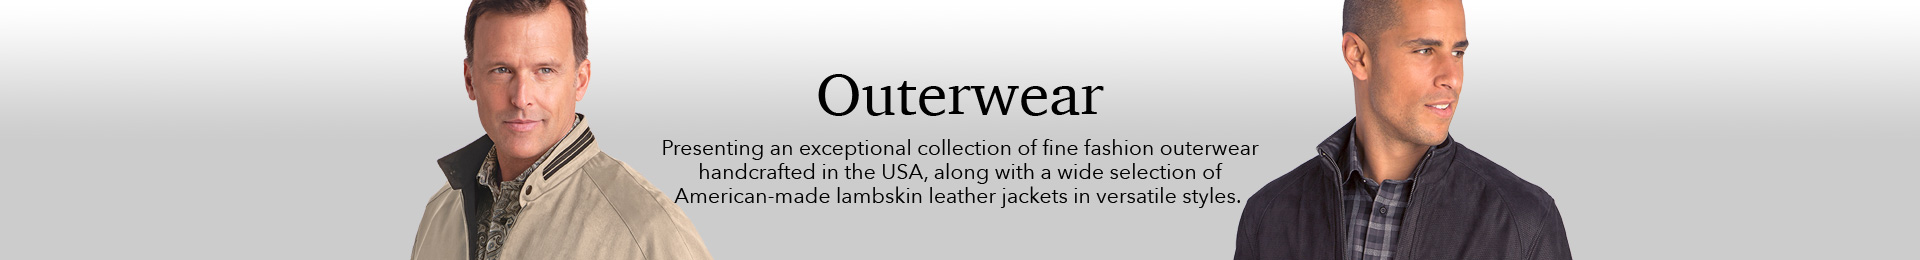 An exceptional collection of fine outerwear